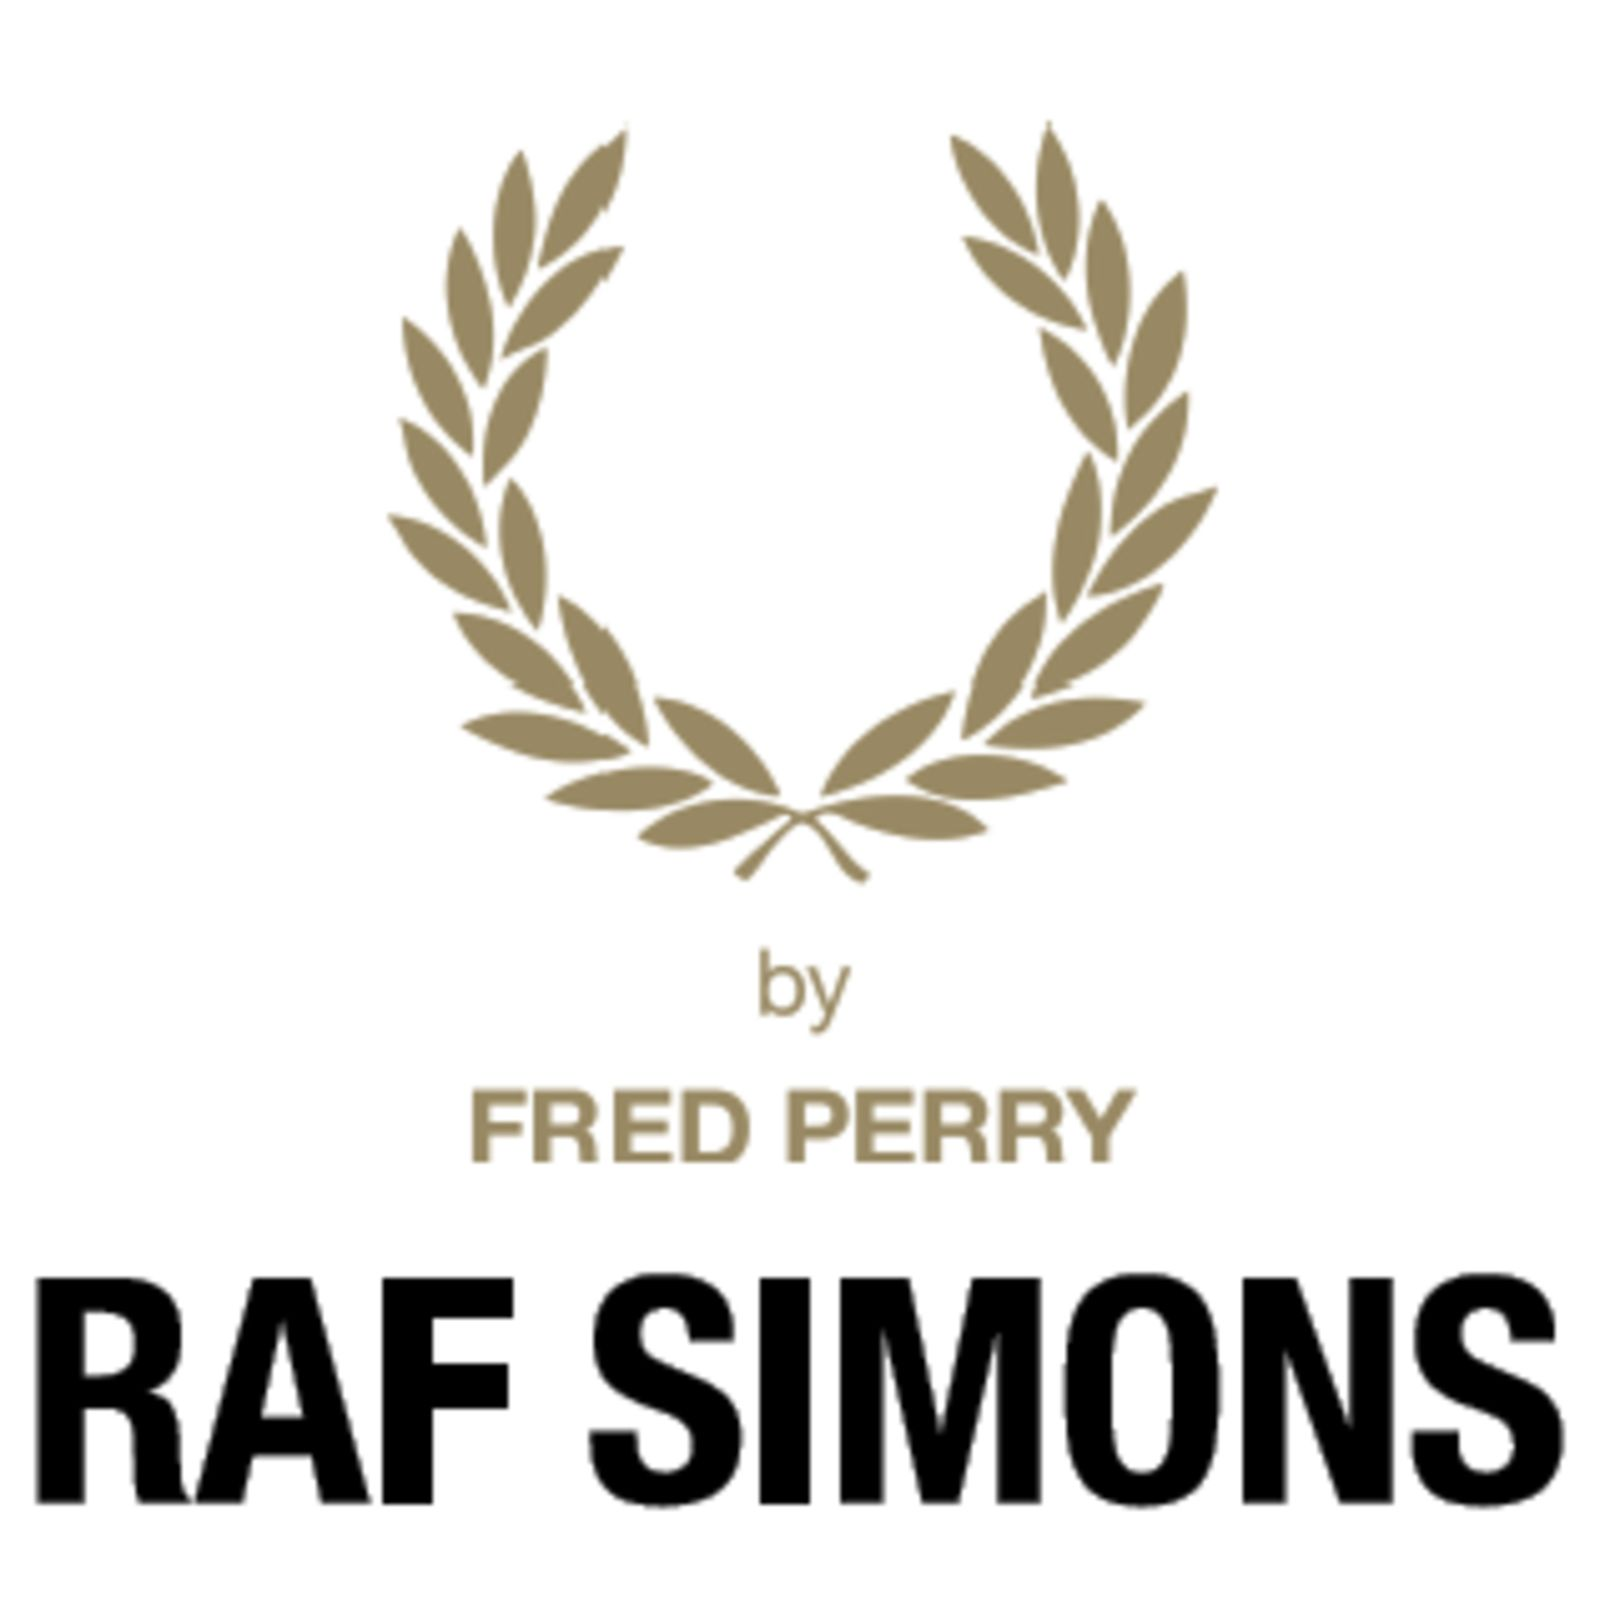 FRED PERRY Laurel Wreath | RAF SIMONS (Bild 1)